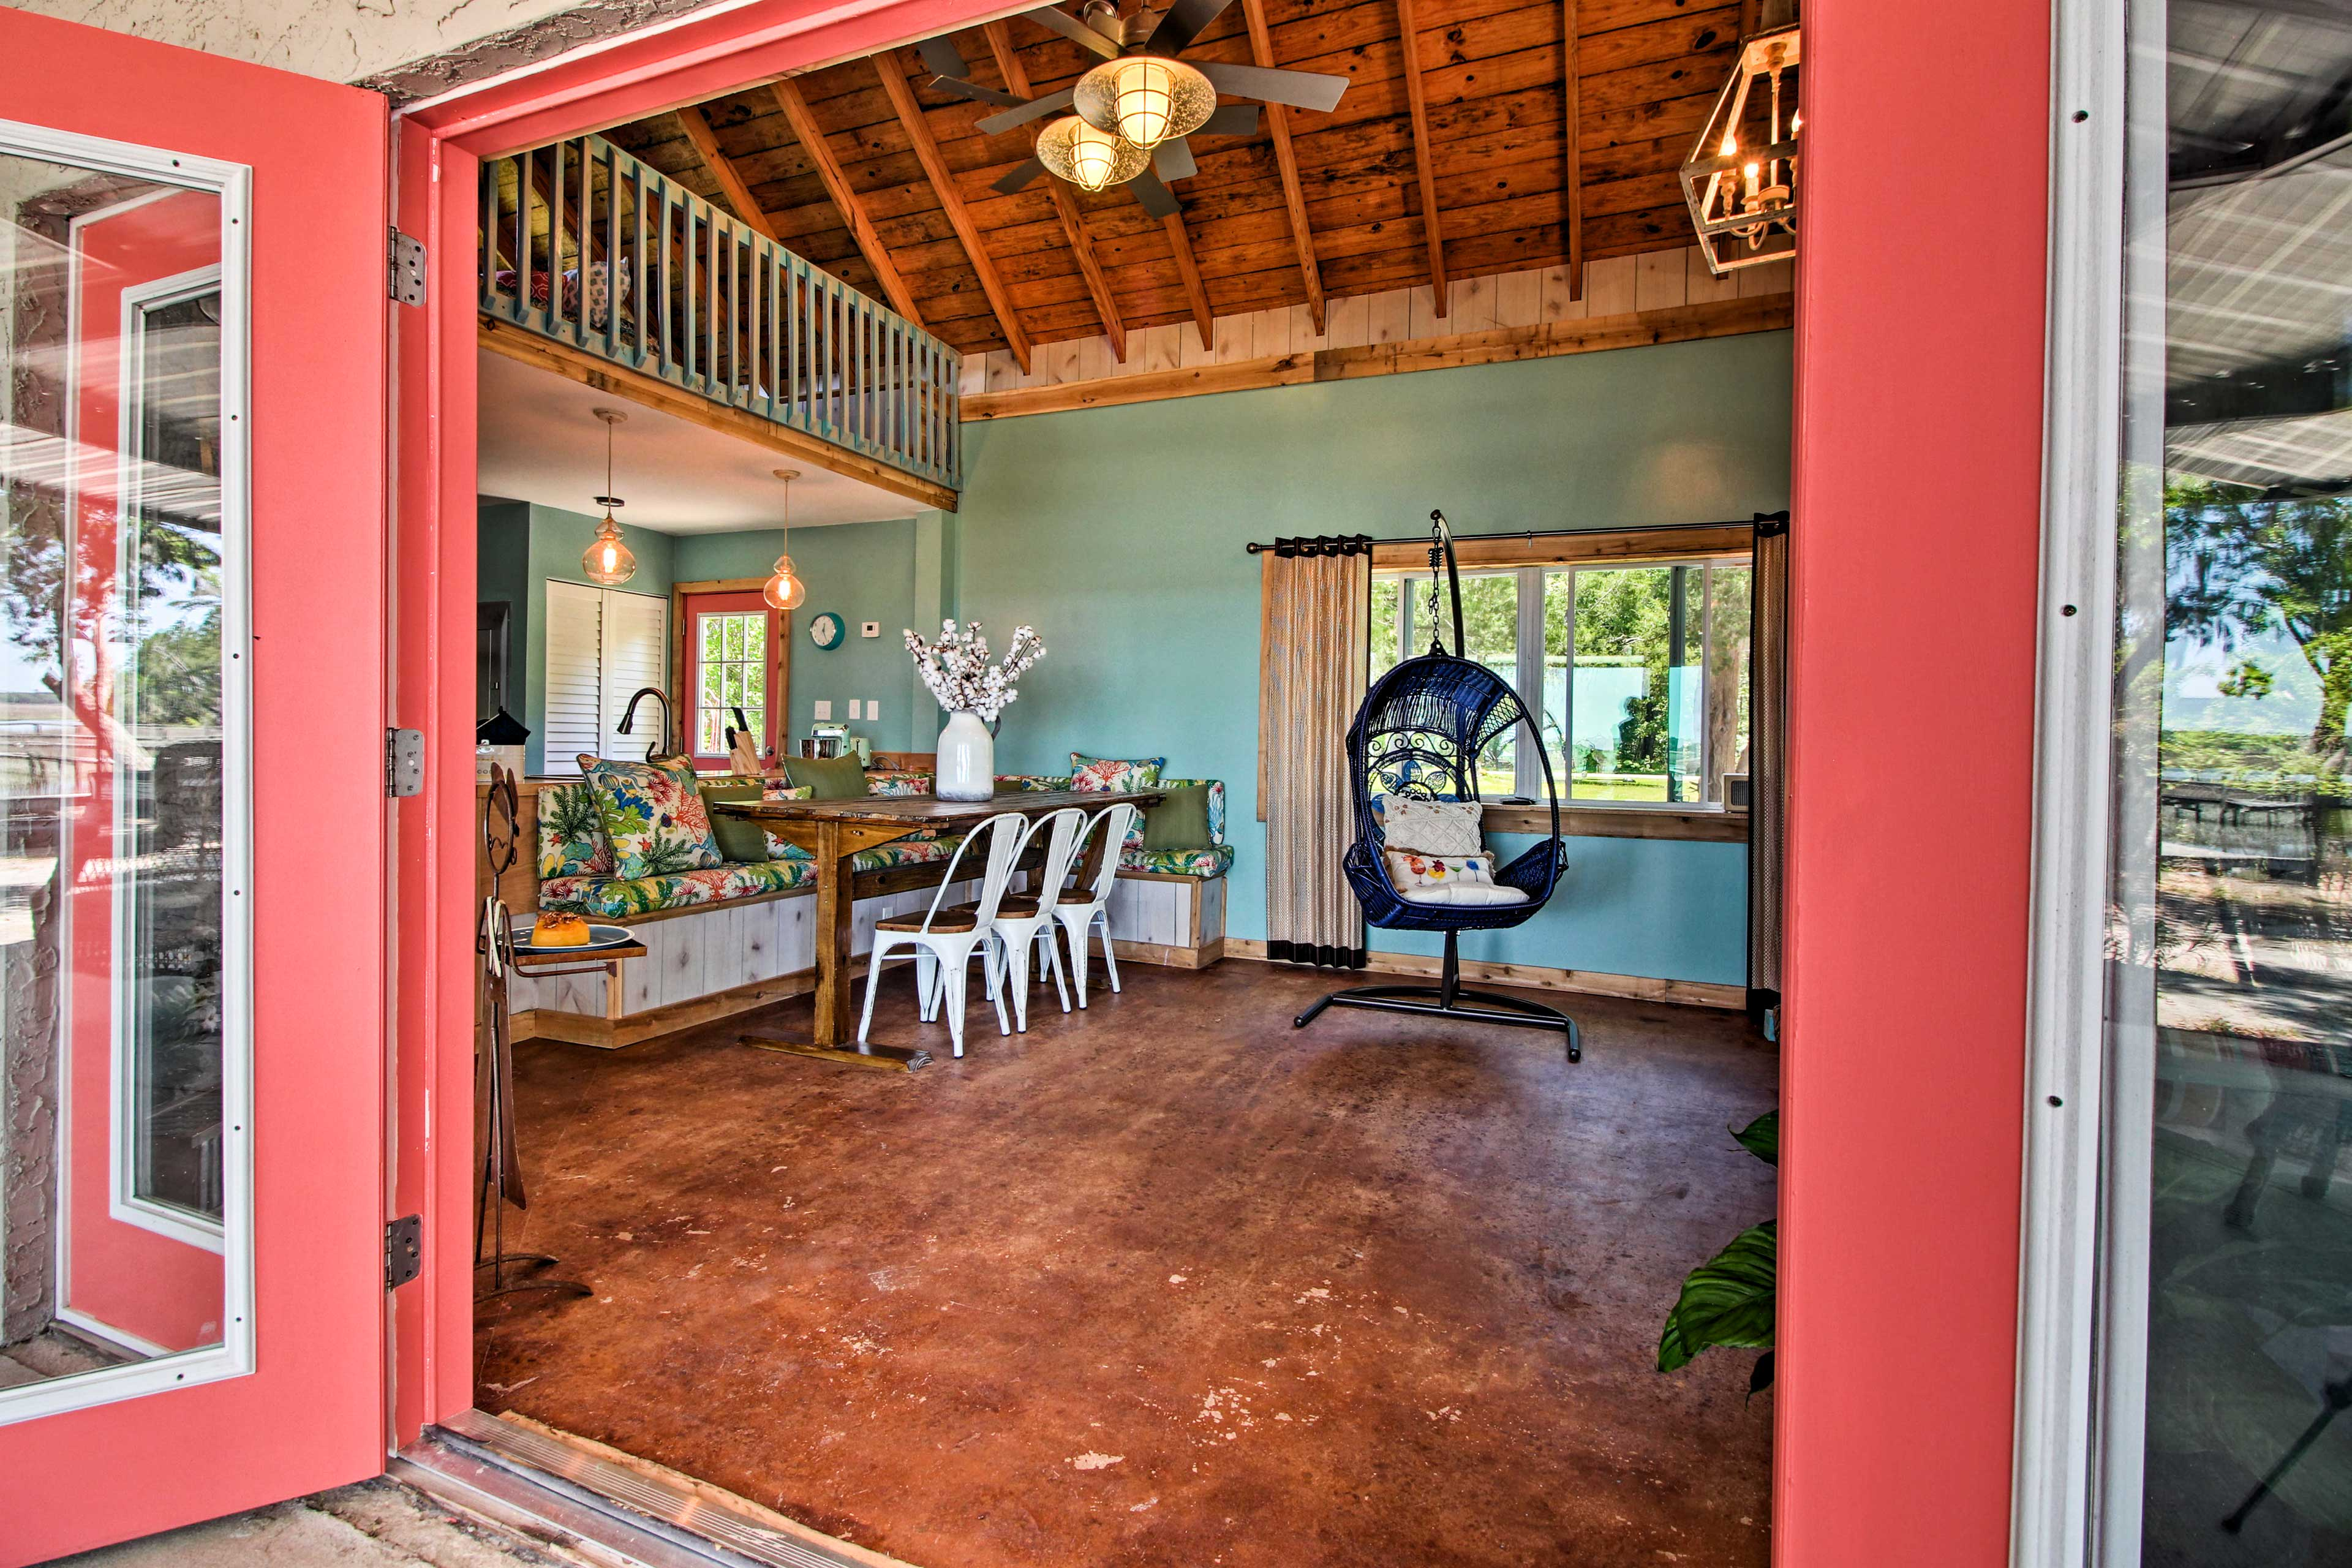 'Susie Shanty' is filled with original artwork to admire!